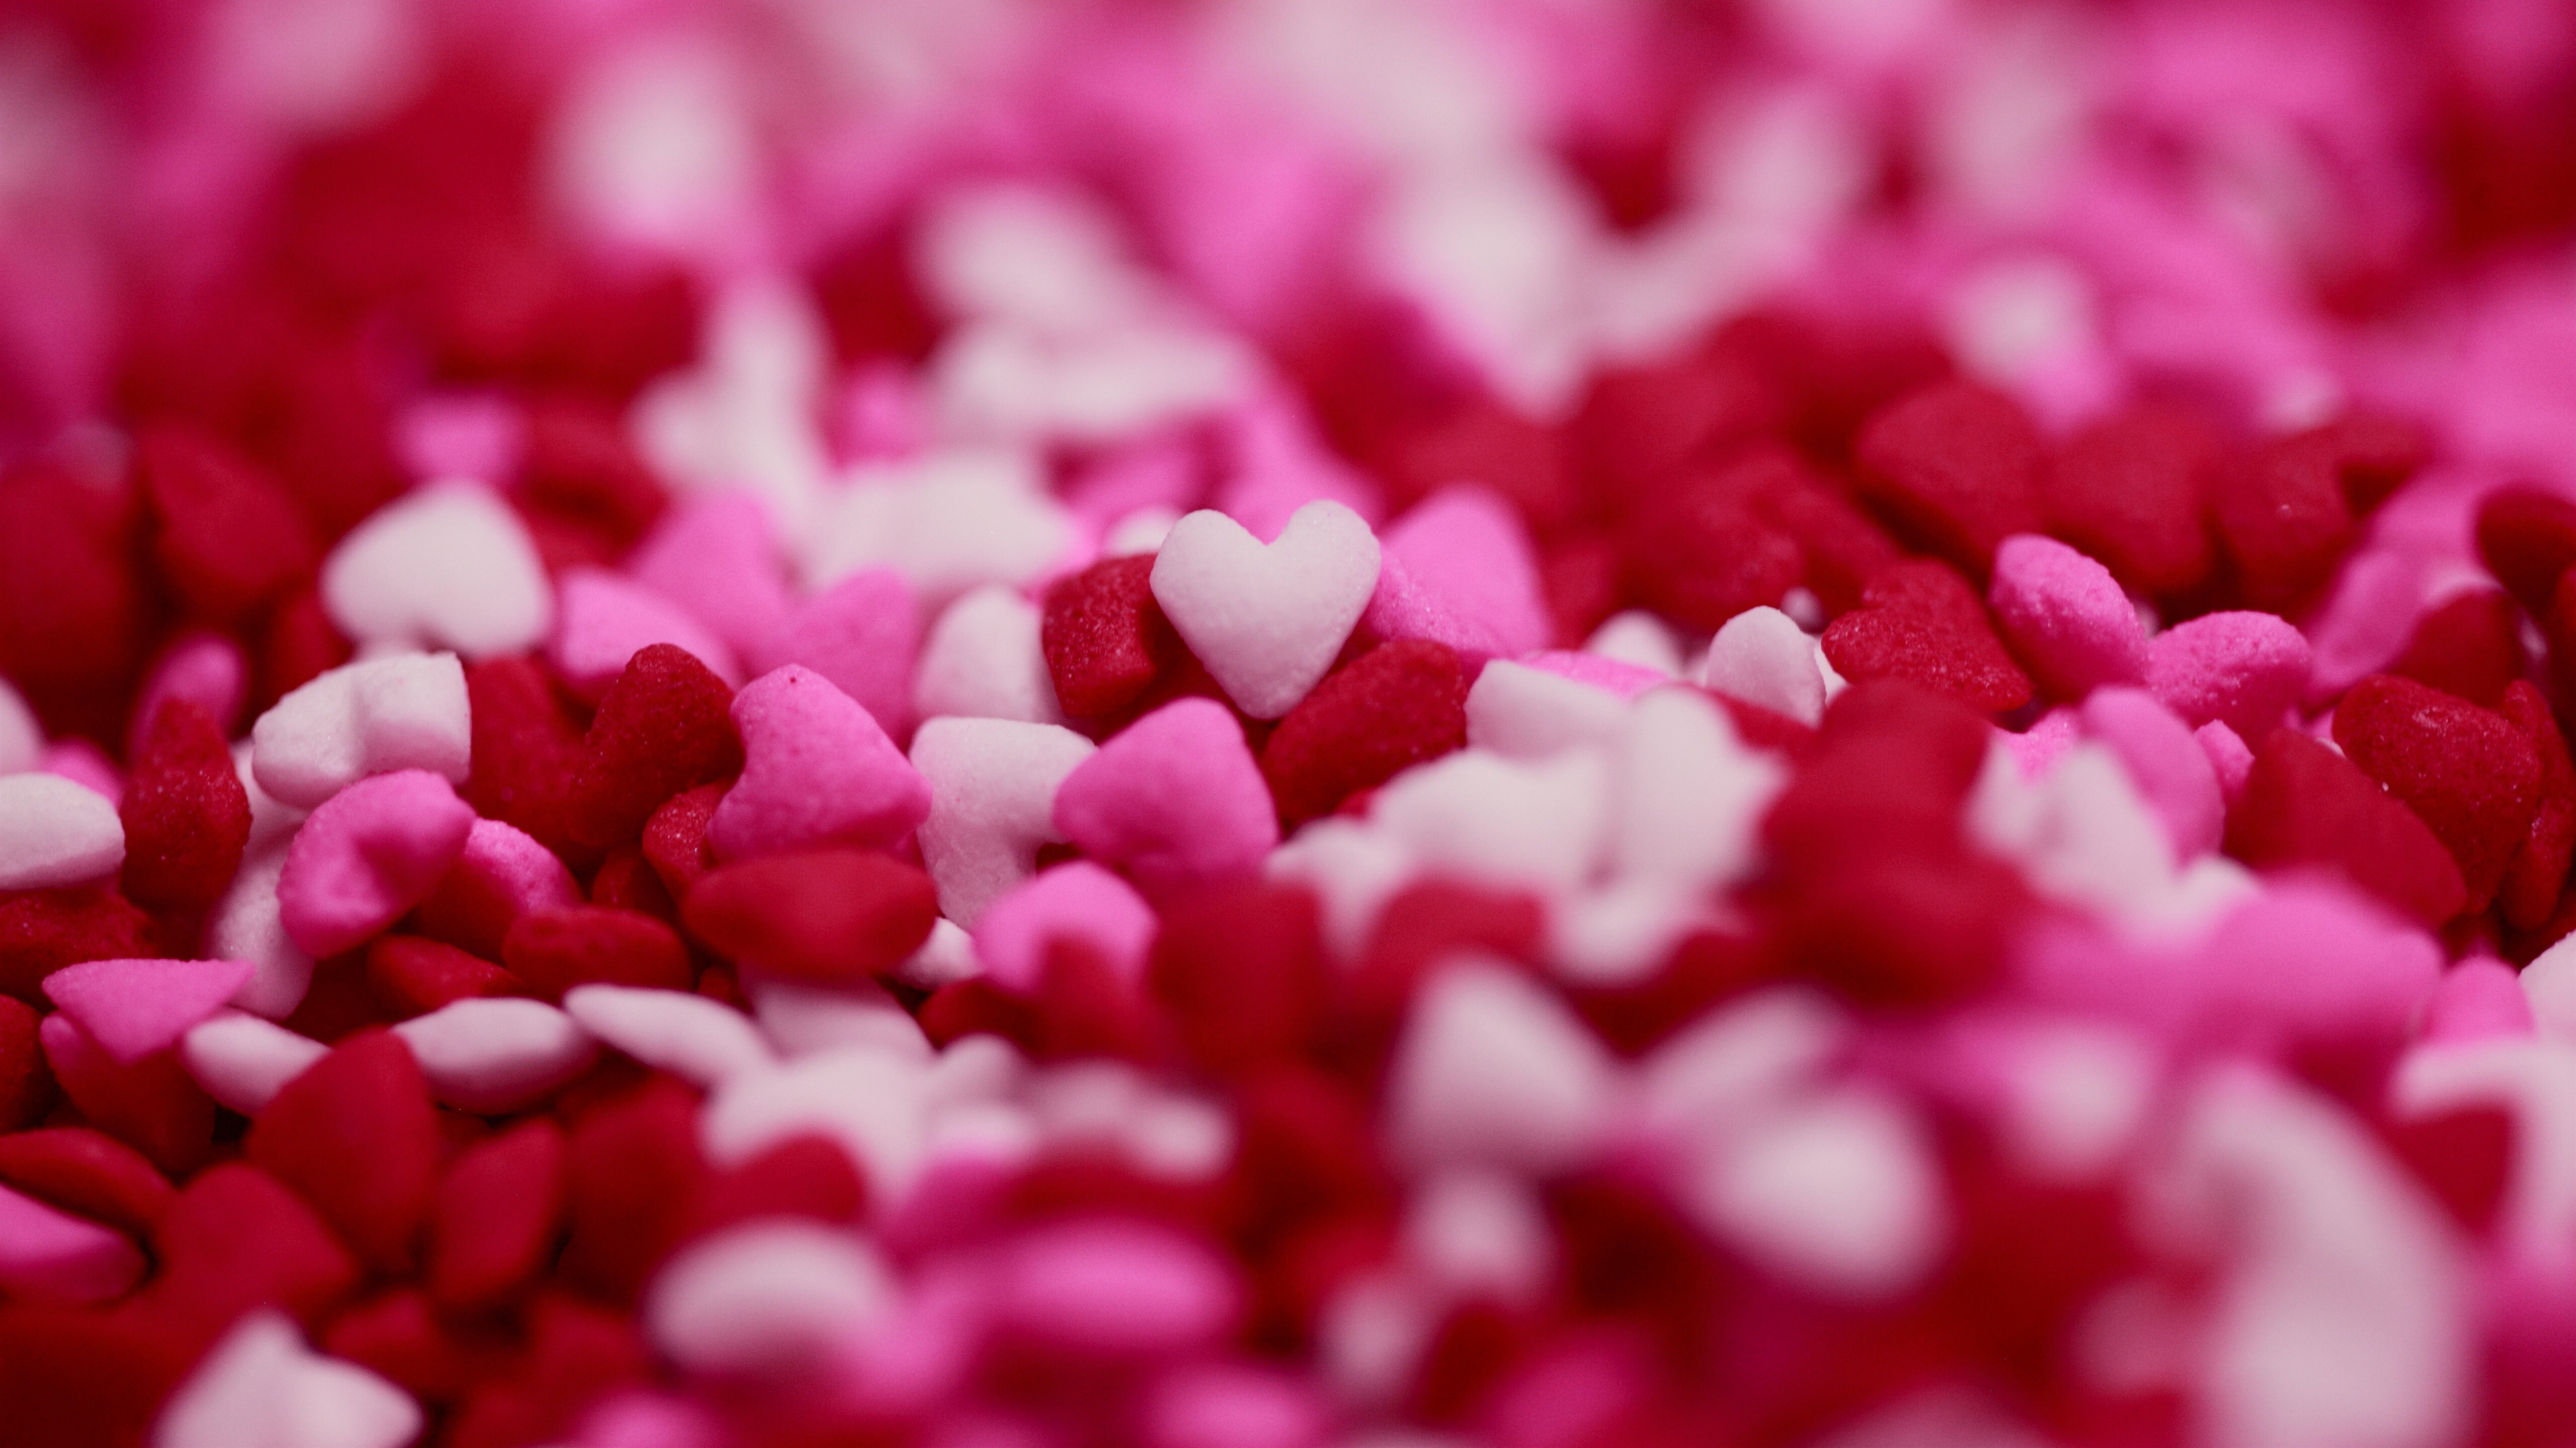 Valentines Day In Colorful Heart Sprinkles 5K Wallpaper